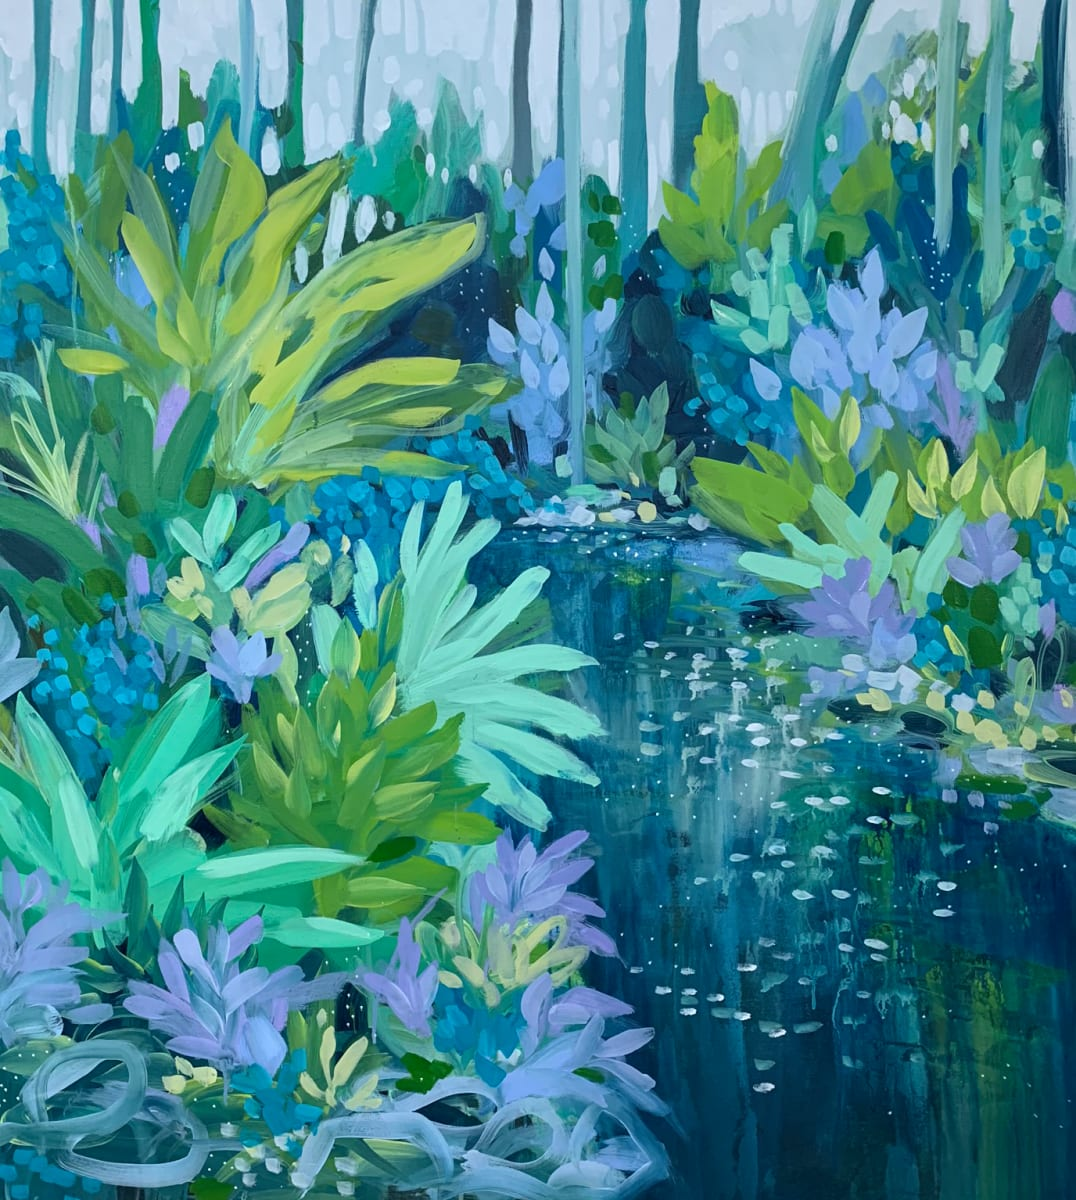 Crossing Near the Ferns by Clair Bremner